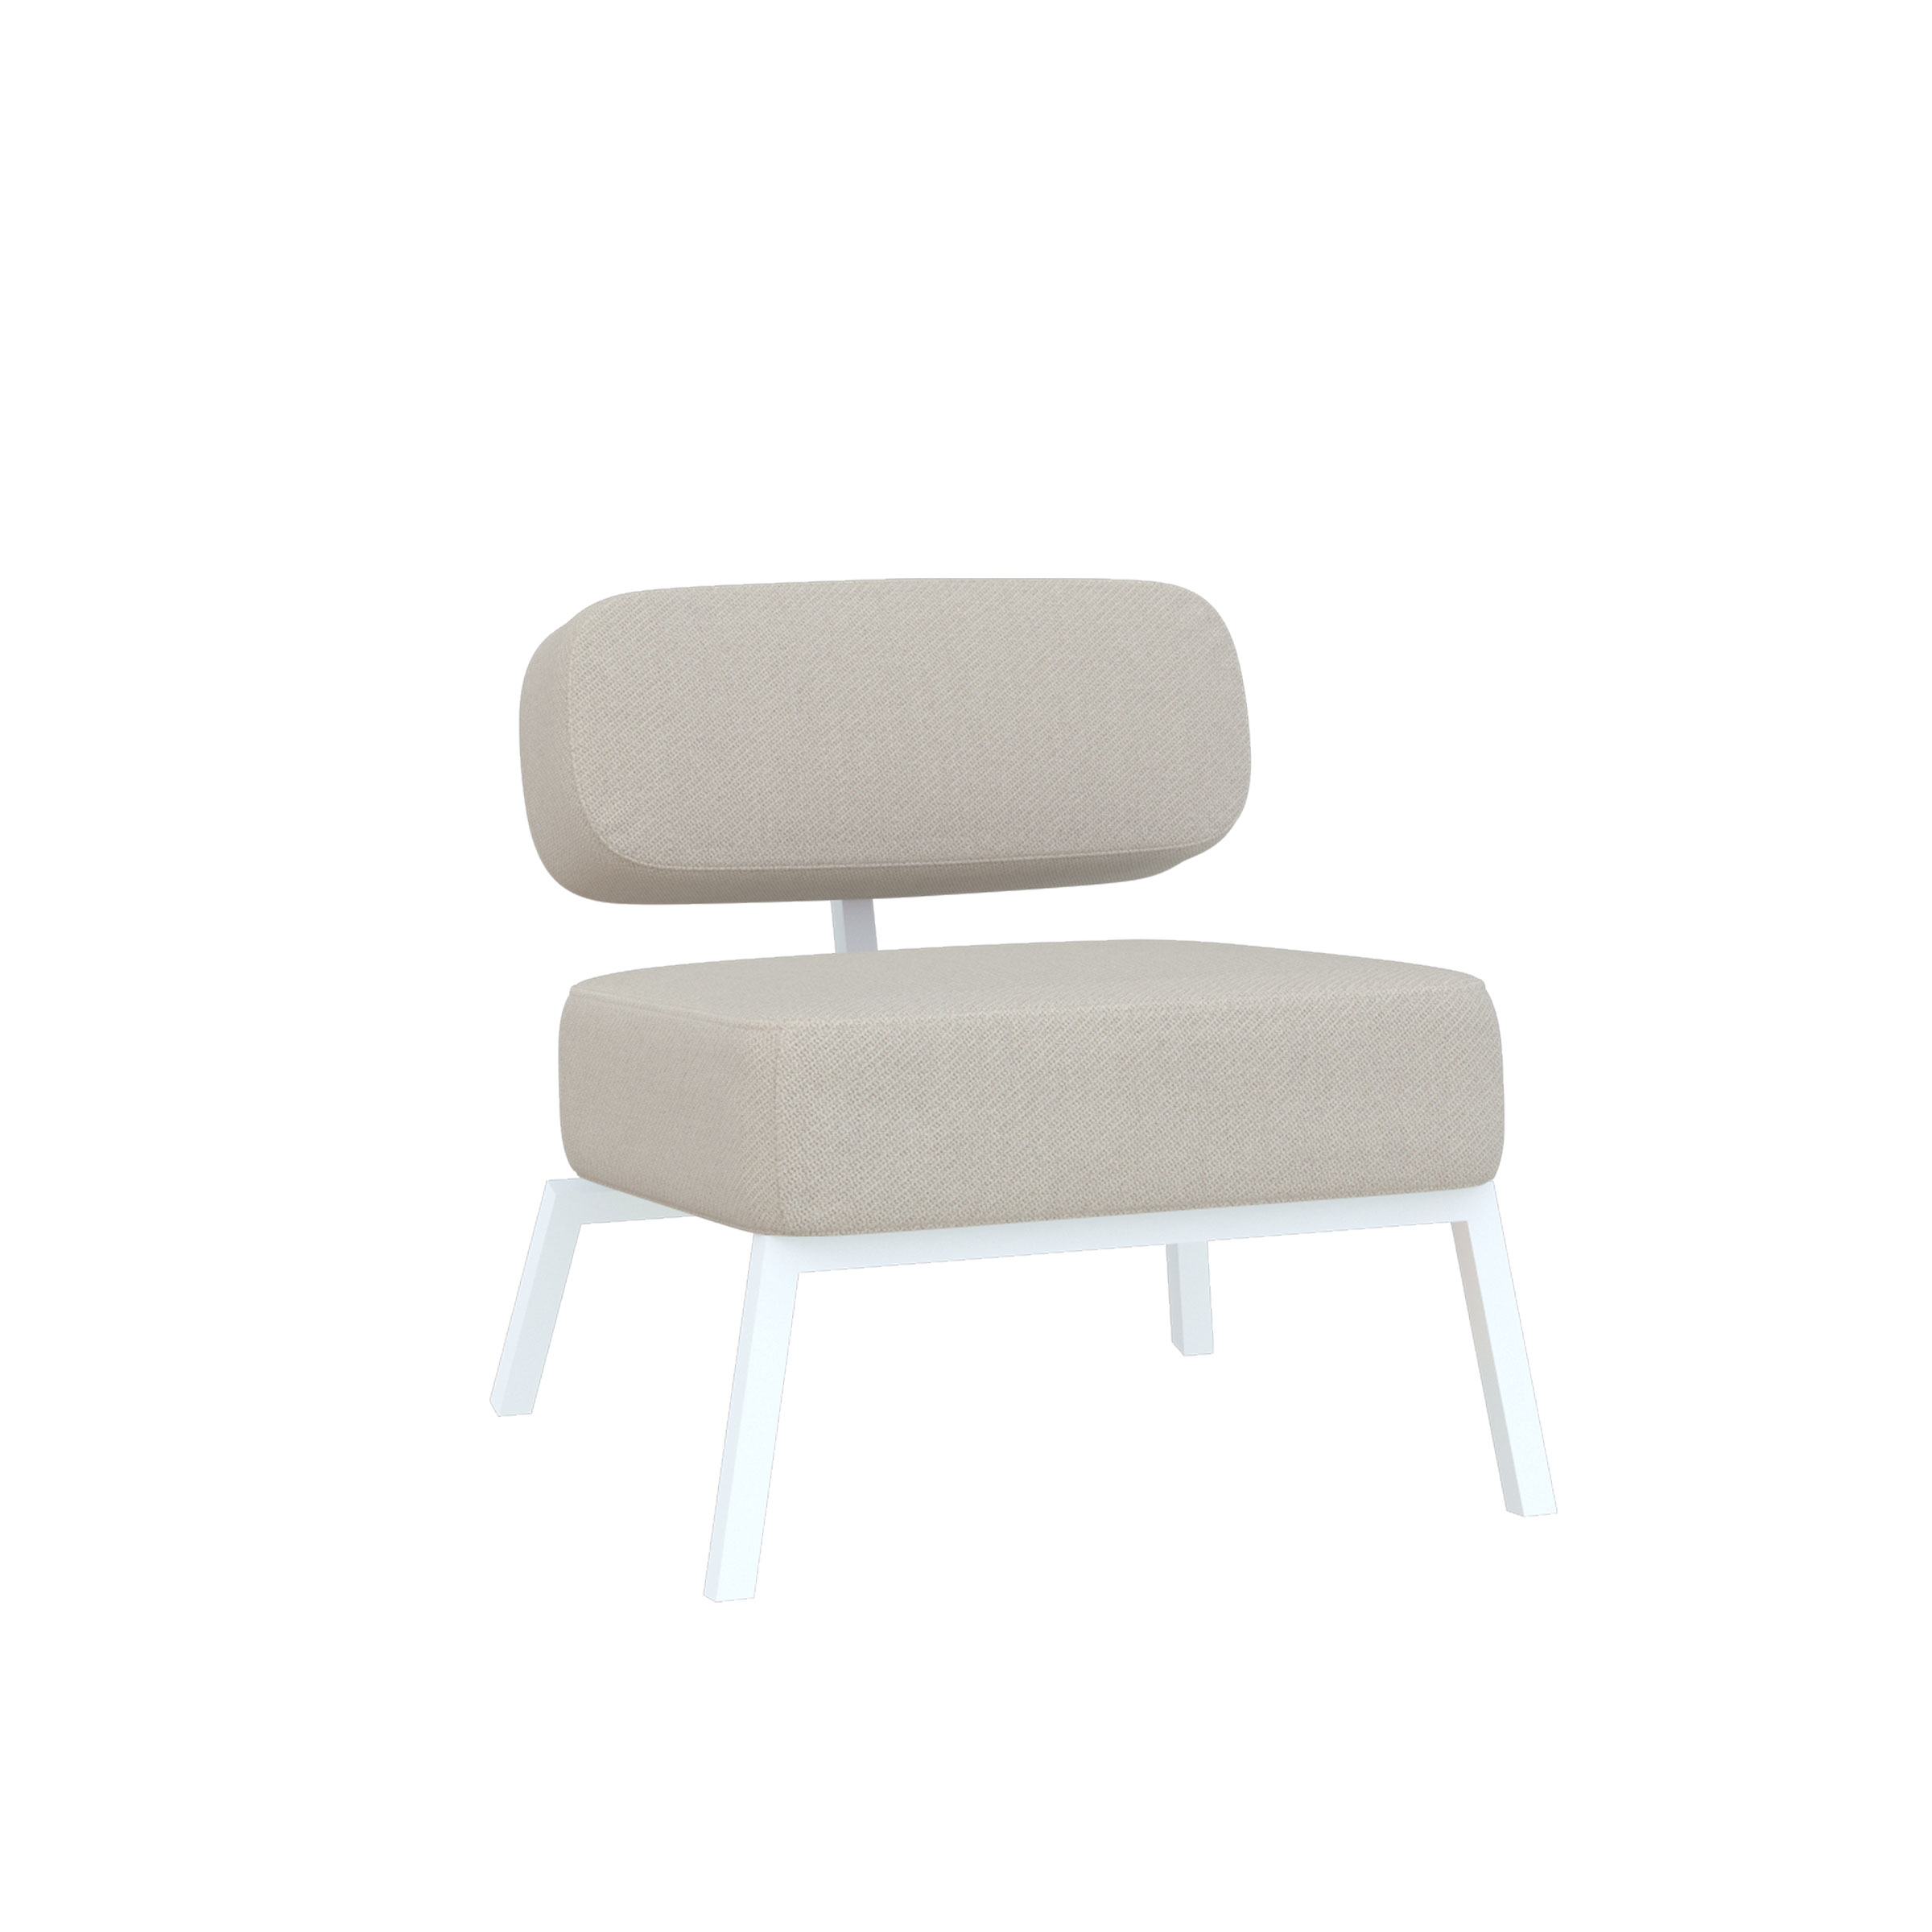 Ode lounge chair 1 zits zonder armleuning